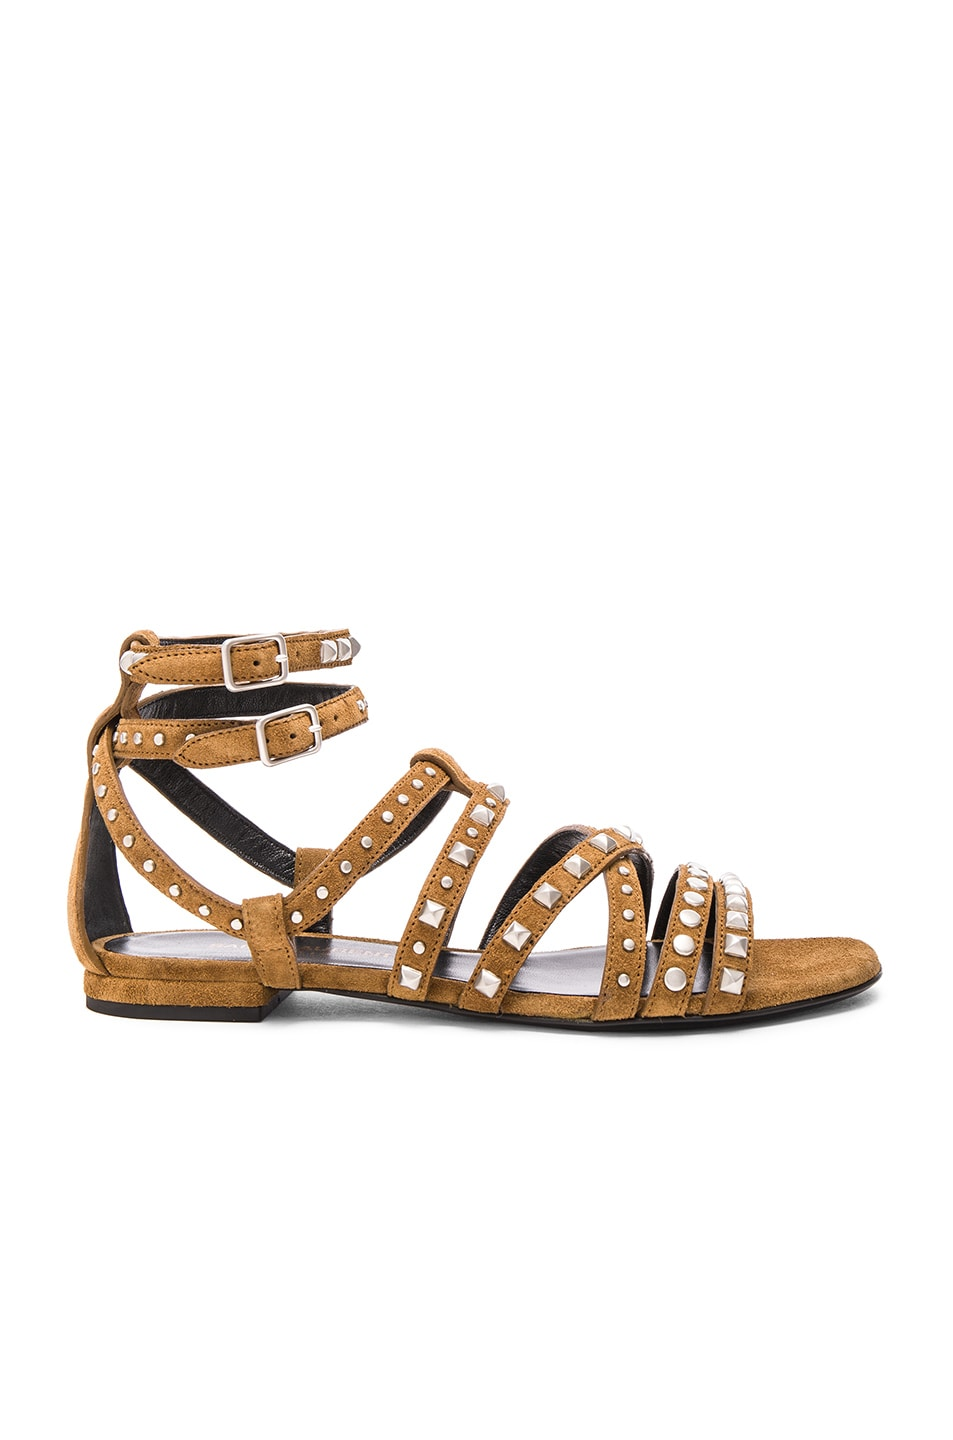 Image 1 of Saint Laurent Suede Multistud Nu Pieds Sandals in Tan